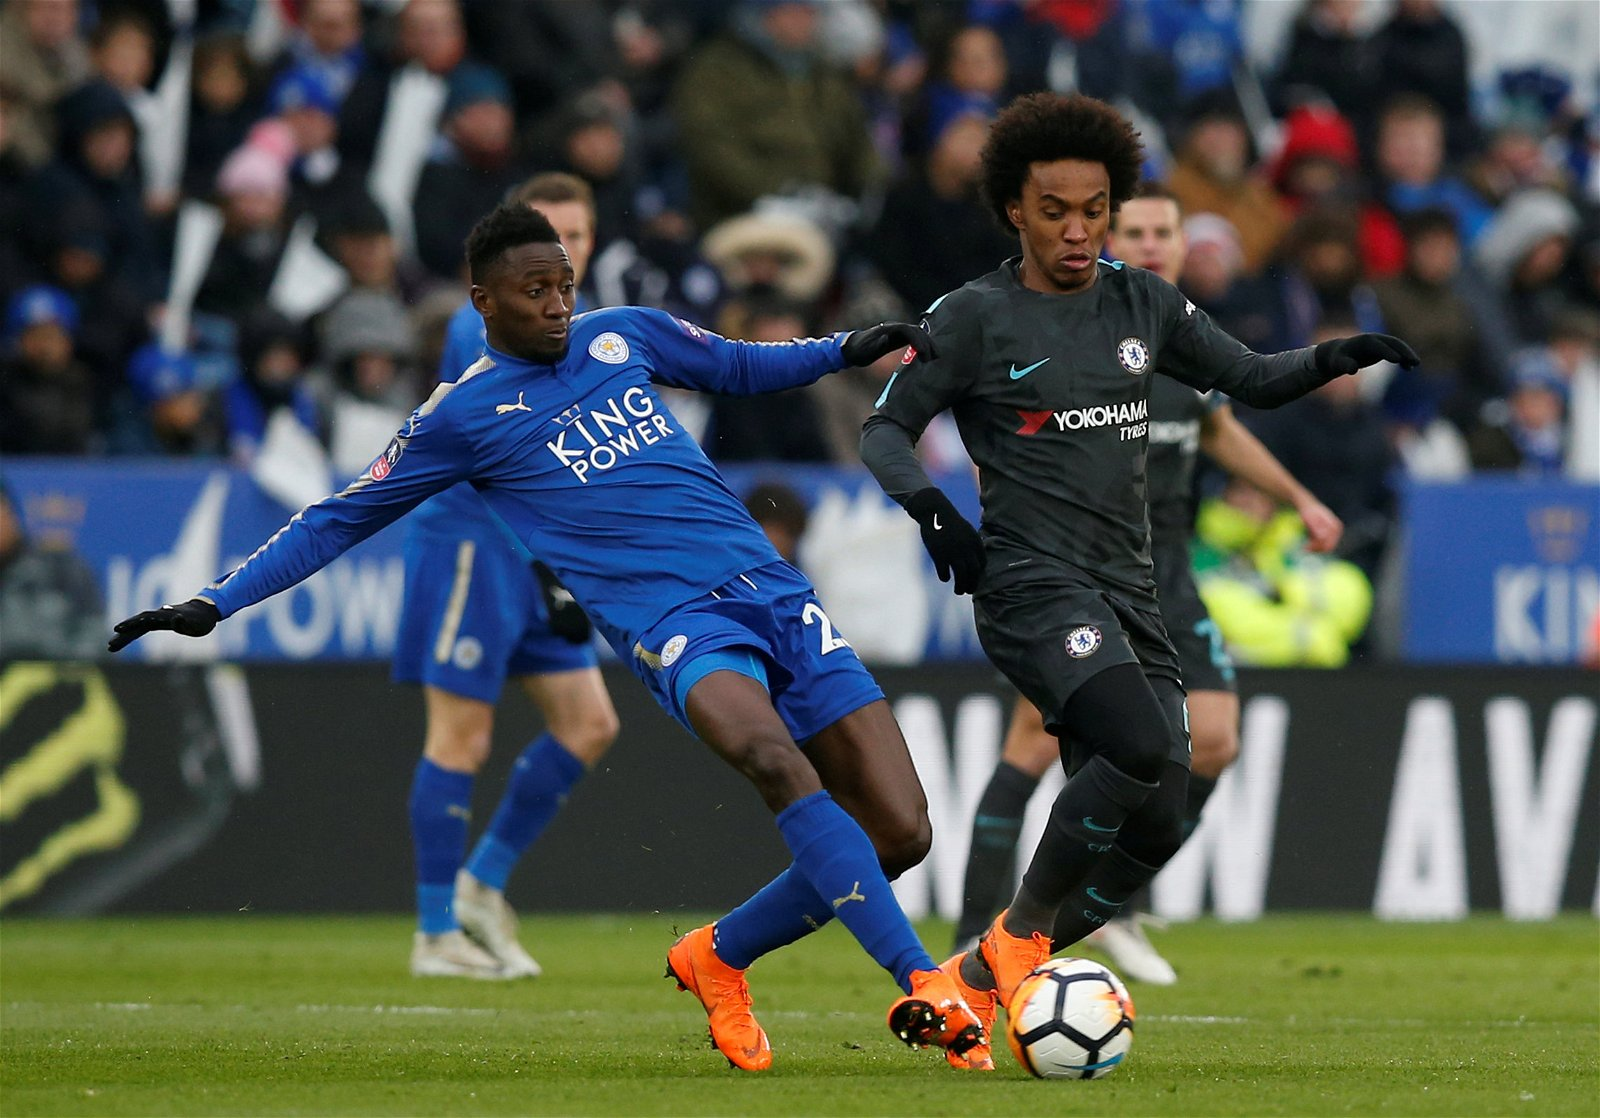 Wilfred Ndidi challenges Chelsea's Willian